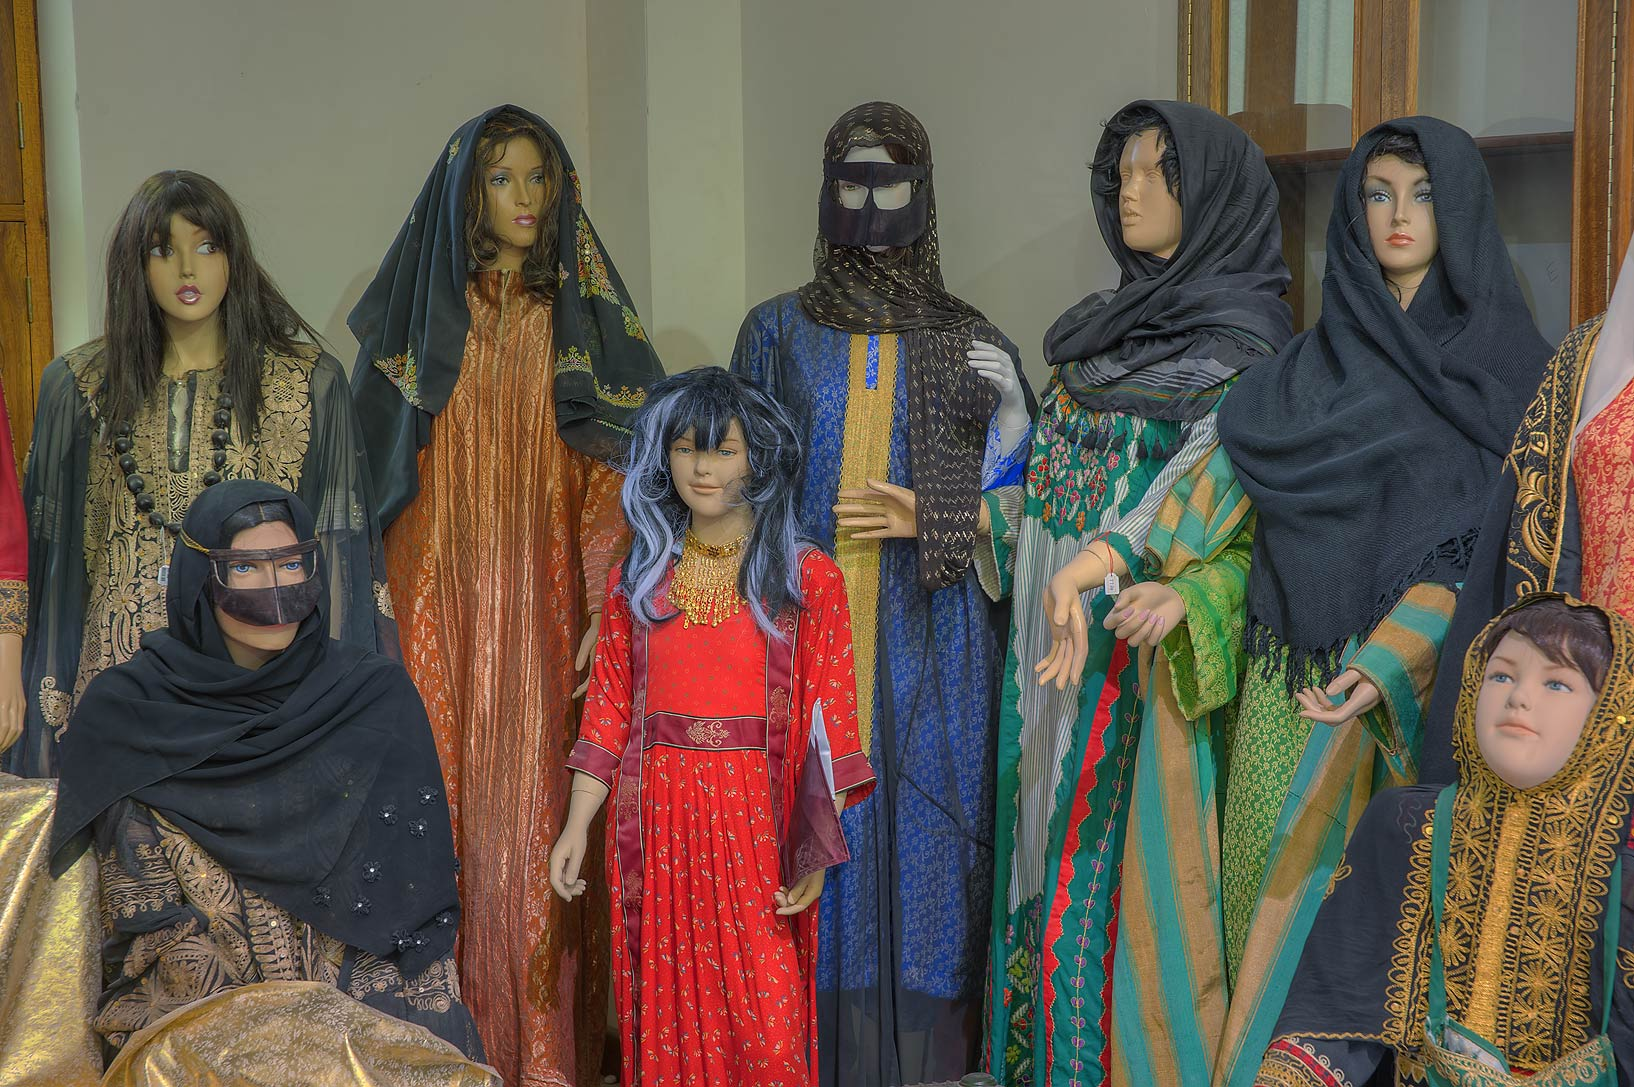 Group of women in traditional dress in Sheikh...Museum near Al-Shahaniya. Doha, Qatar